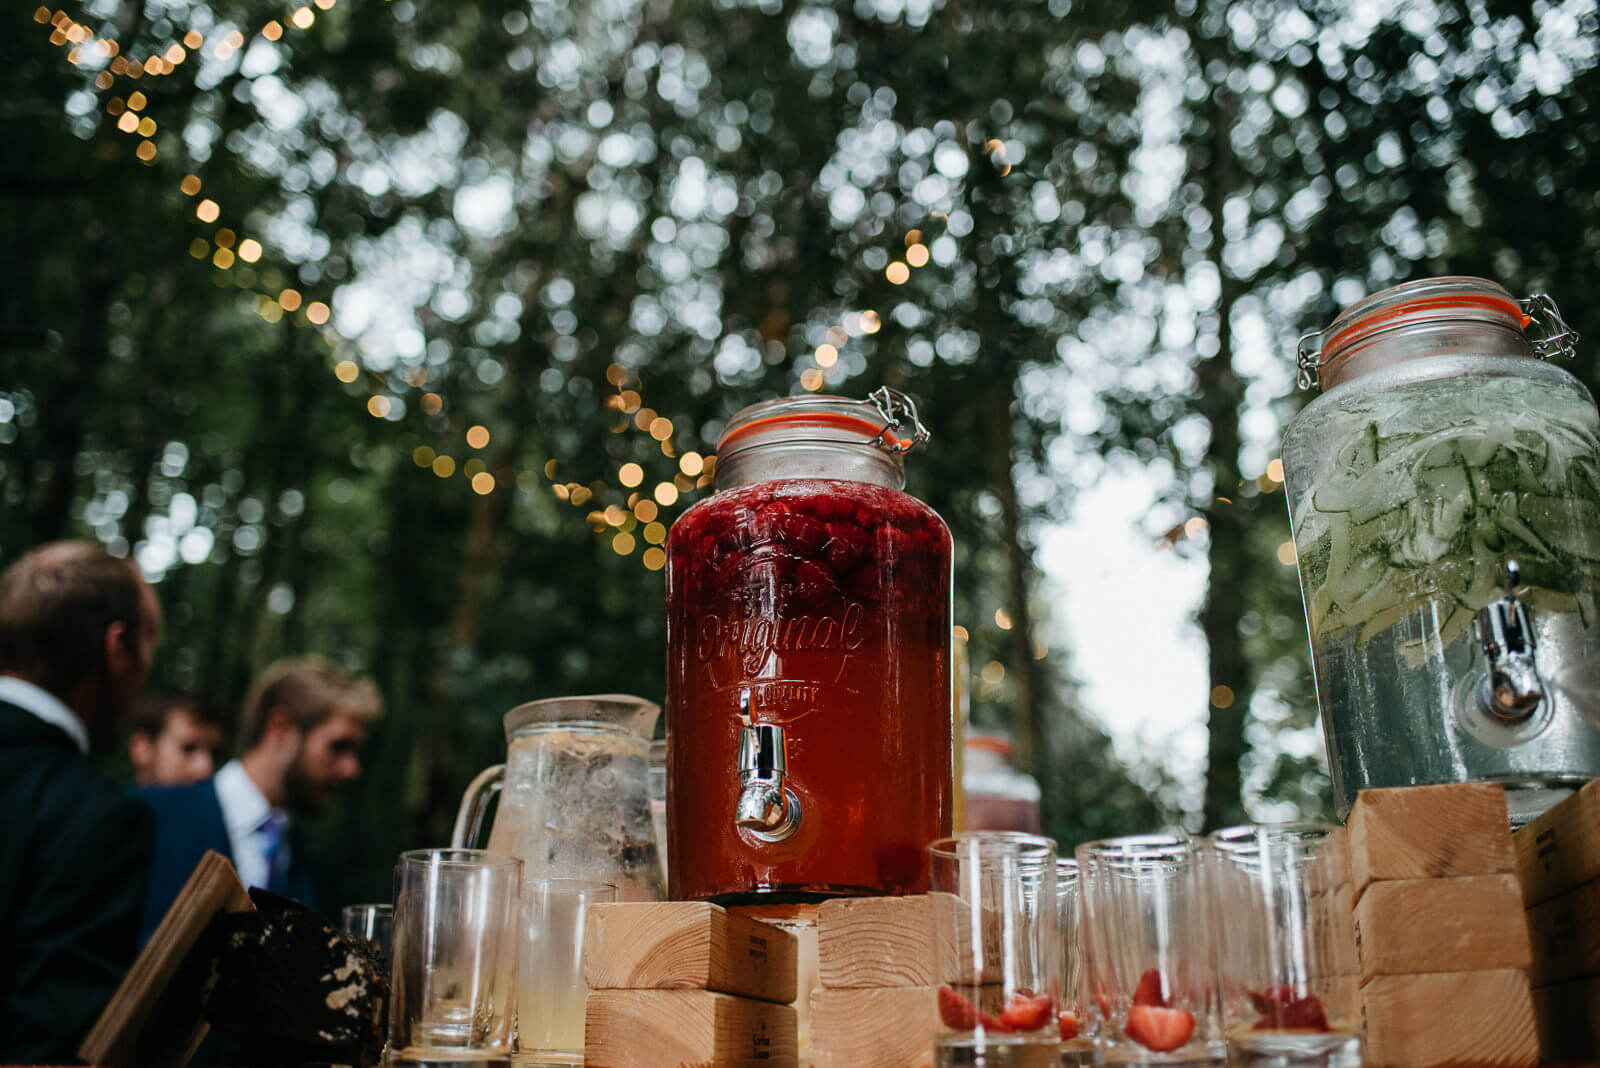 Punch cocktail in large mason jar for tipi wedding in Shropshire